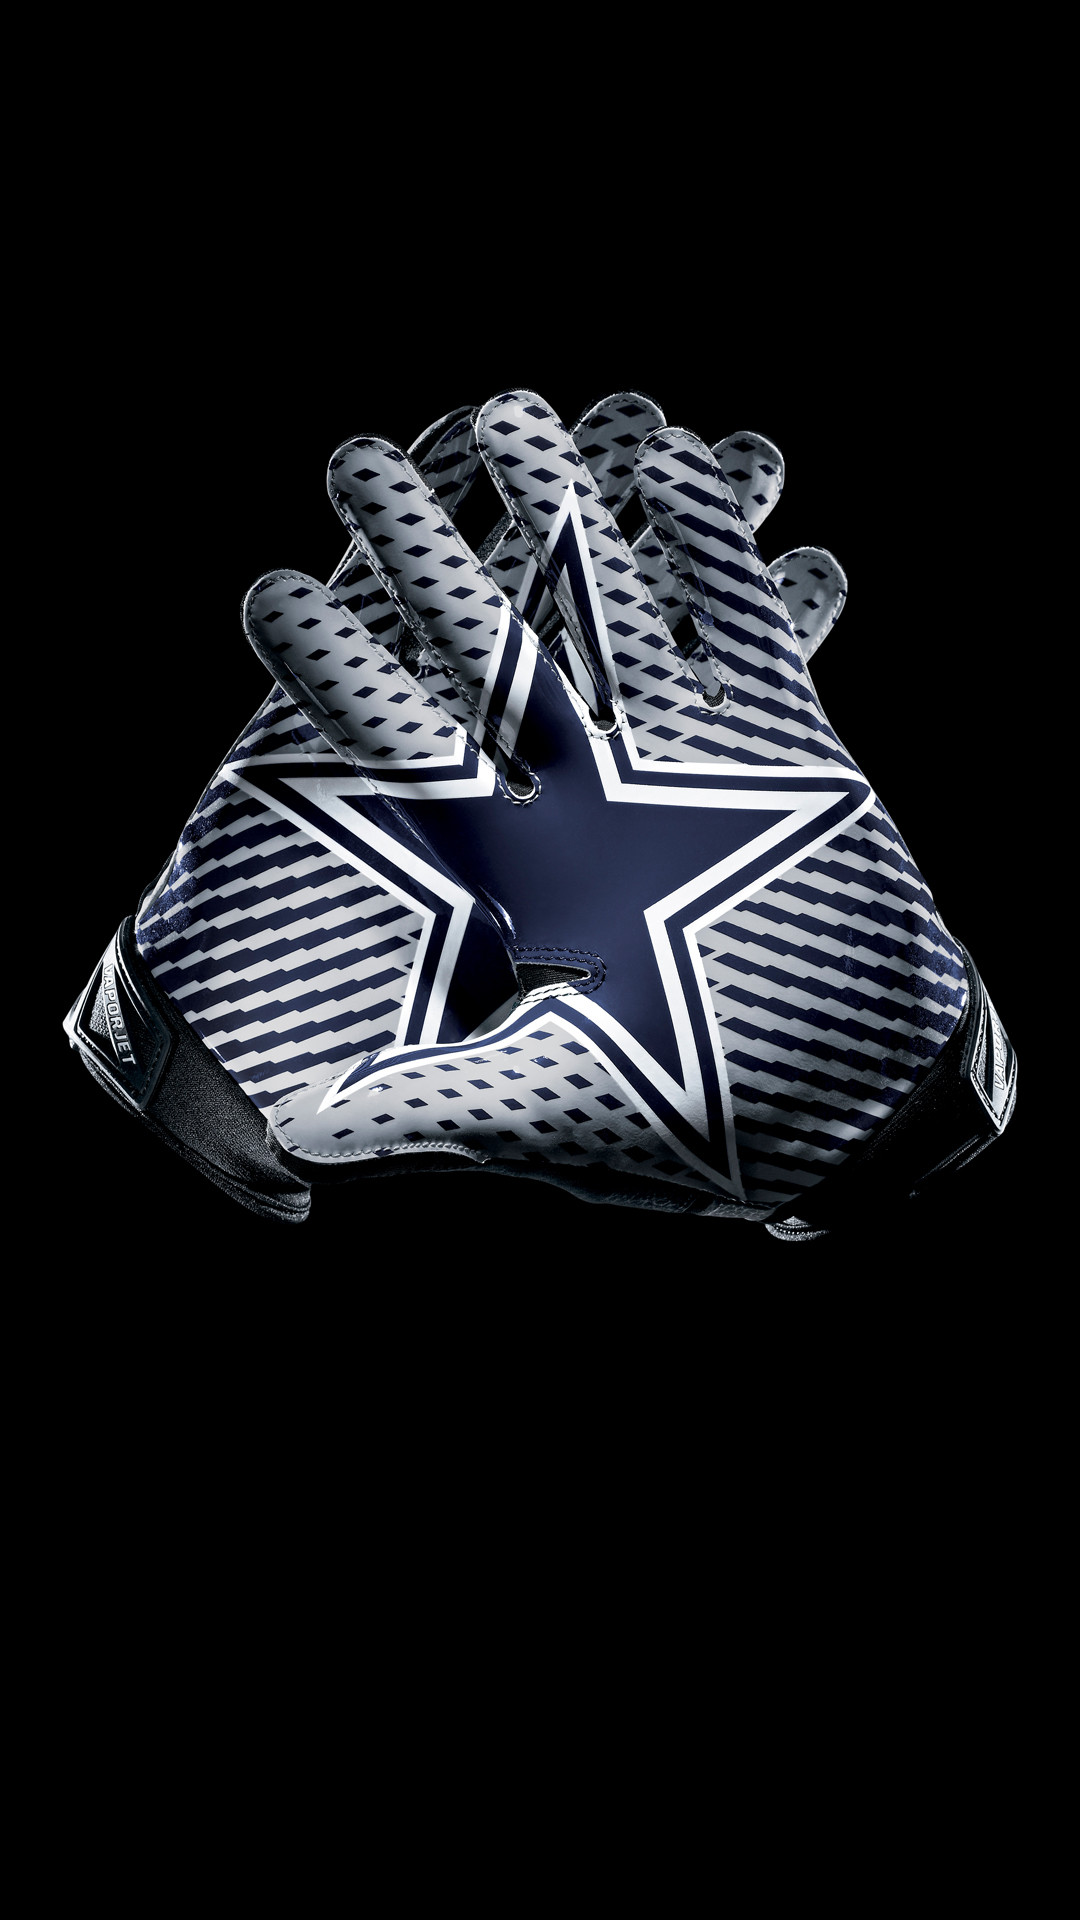 Dallas Cowboys Wallpaper For Cell Phones with dark background